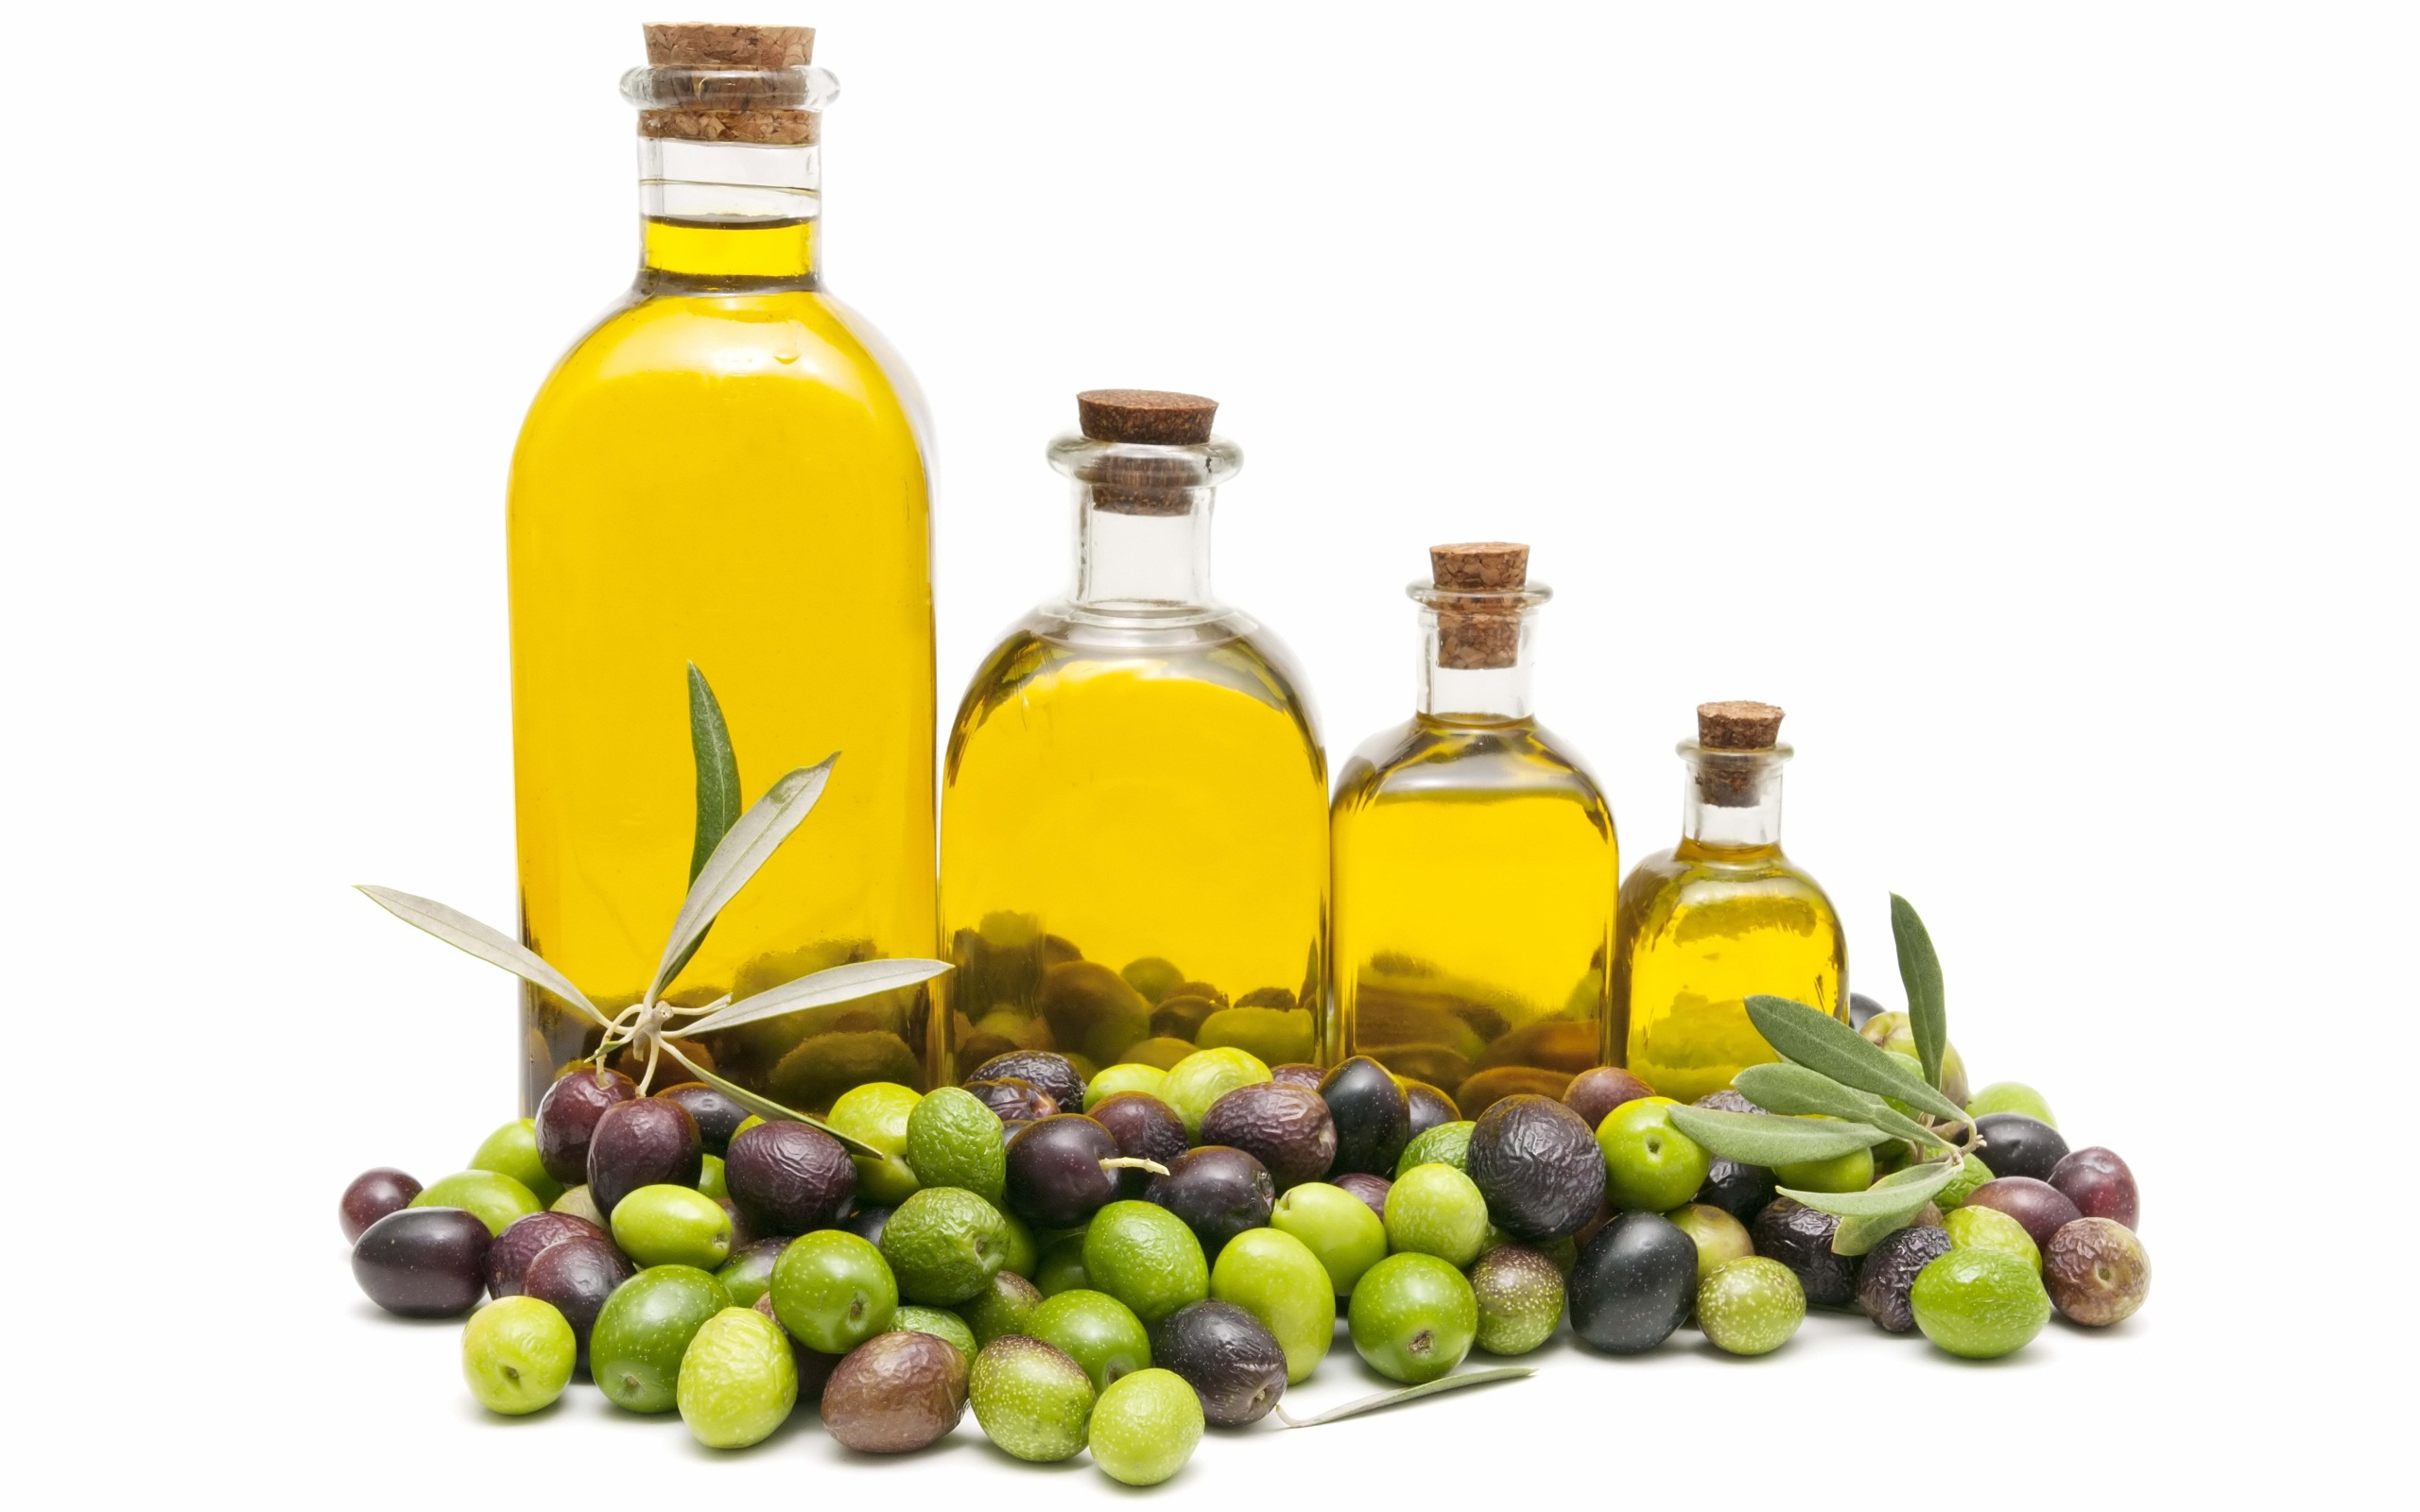 Between 98 and 99 percent of olive oil consumed in the US is imported.